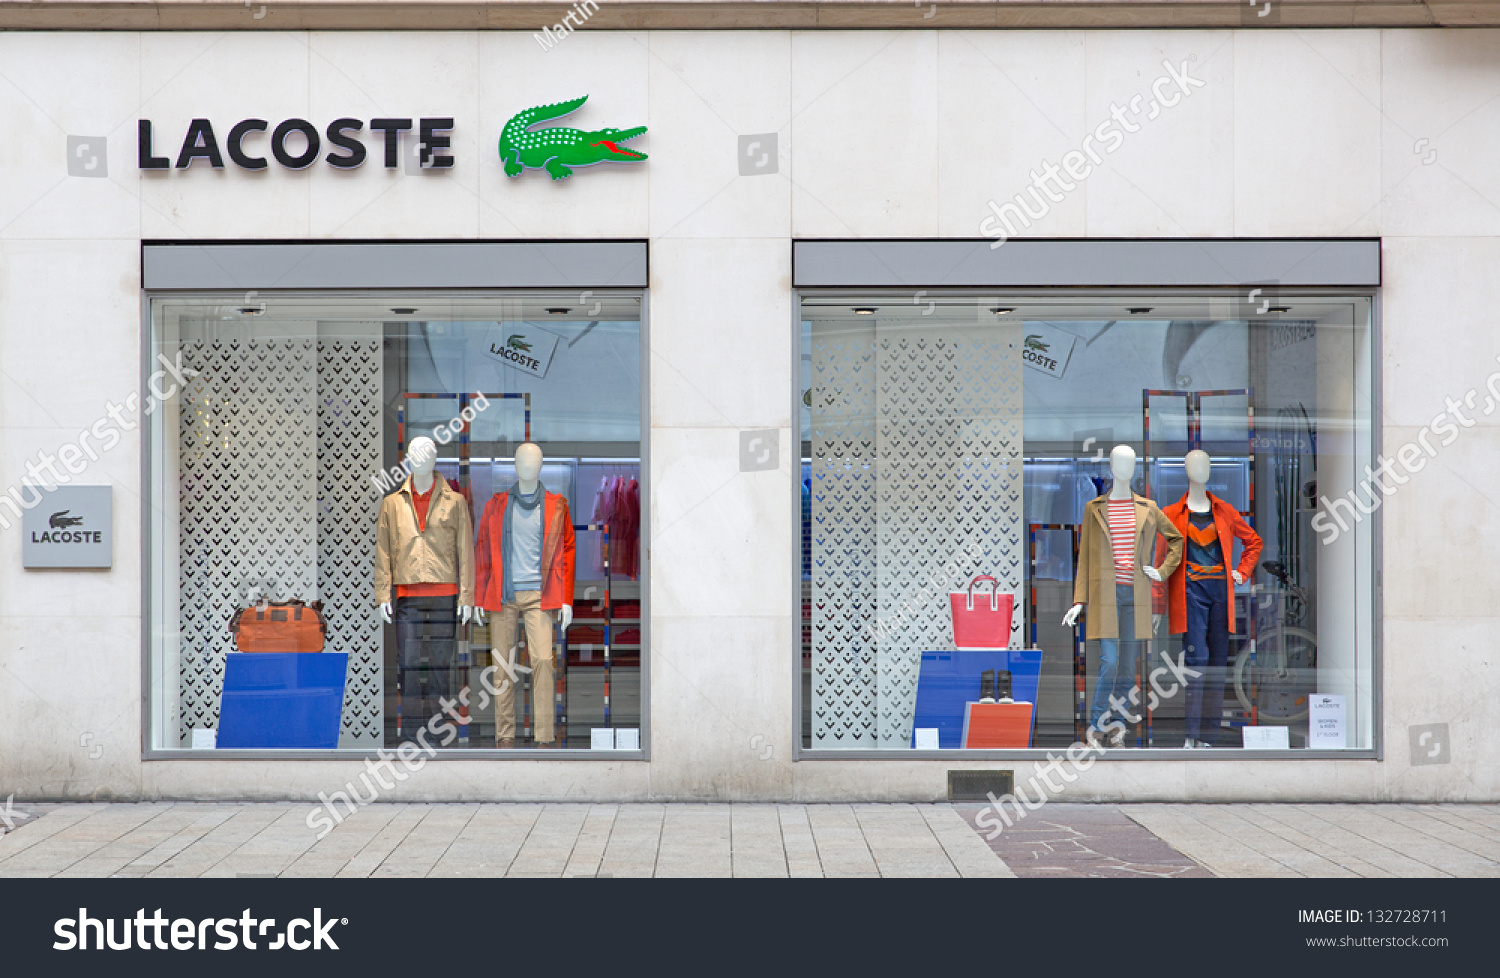 24 Outlet Geneva March 24 Retail Outlet Lacoste Stock Photo